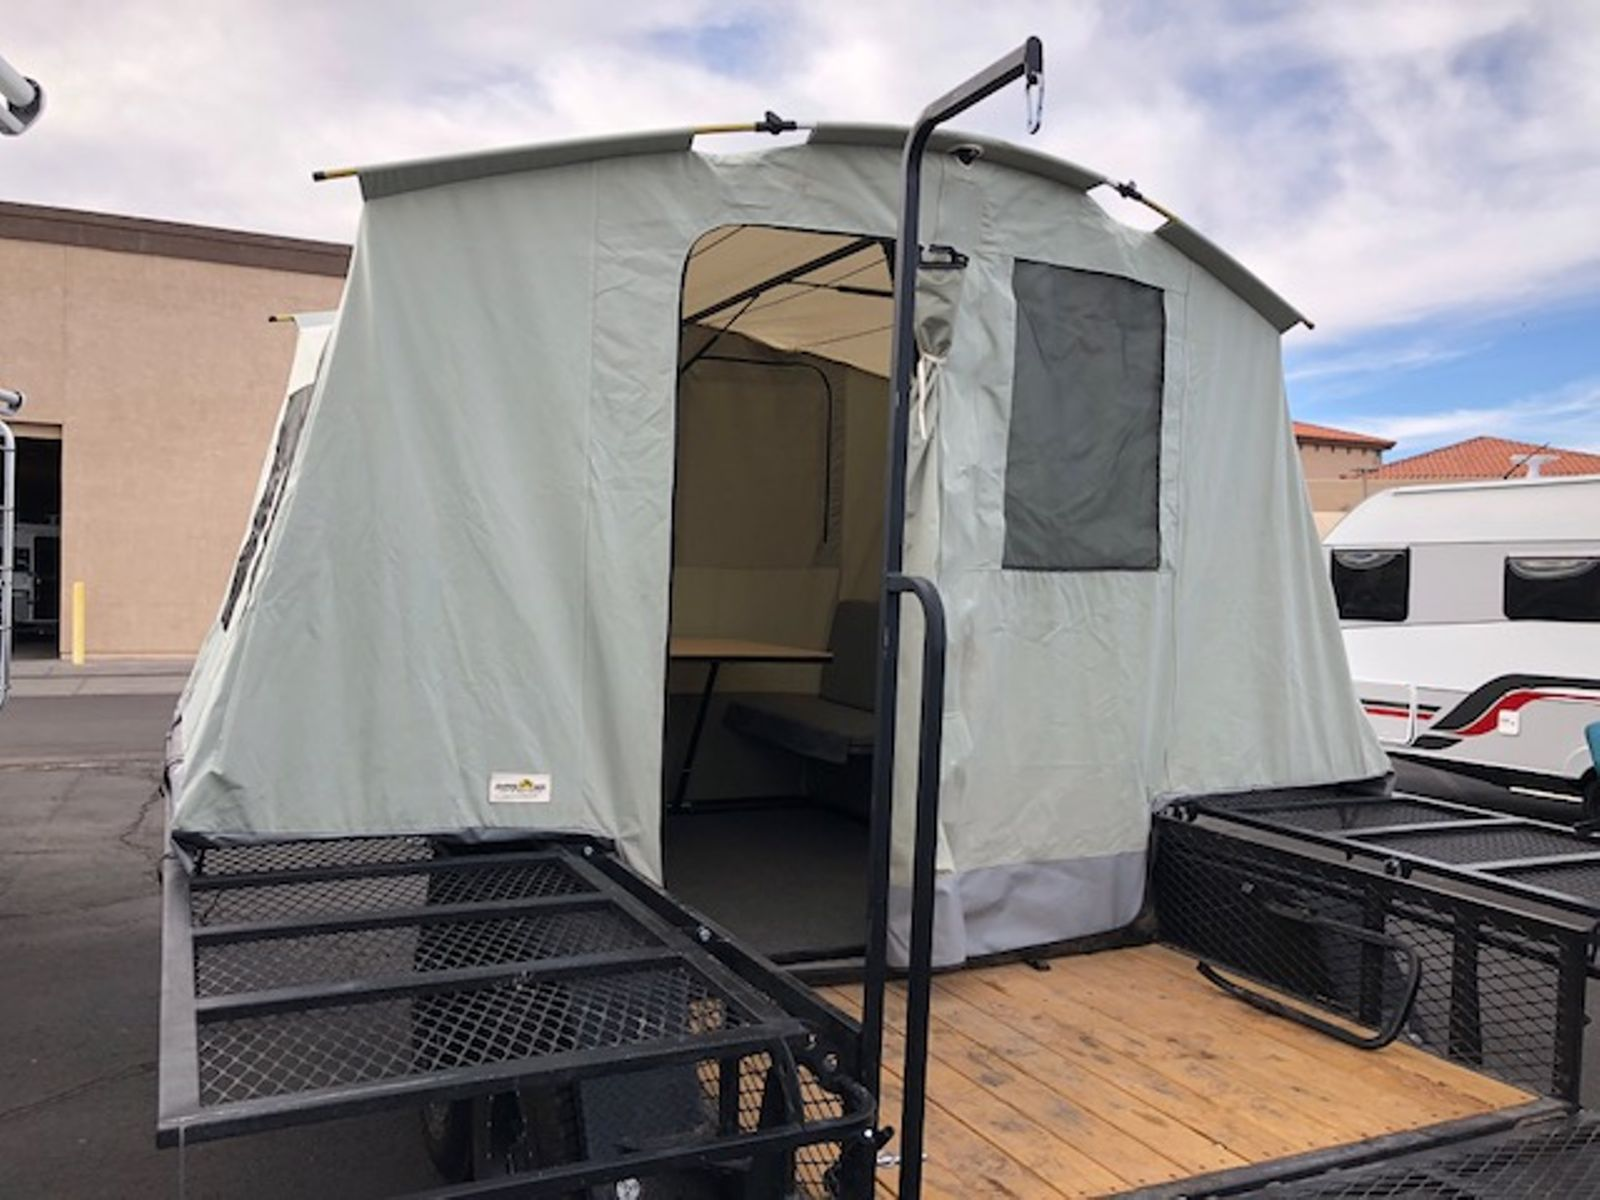 ... 2017 Jumping Jack Black Out Edition 6x12x8u0027 Tent in Mesa ... & 2017 Jumping Jack Black Out Edition 6x12x8u0027 Tent | Mesa AZ 85202